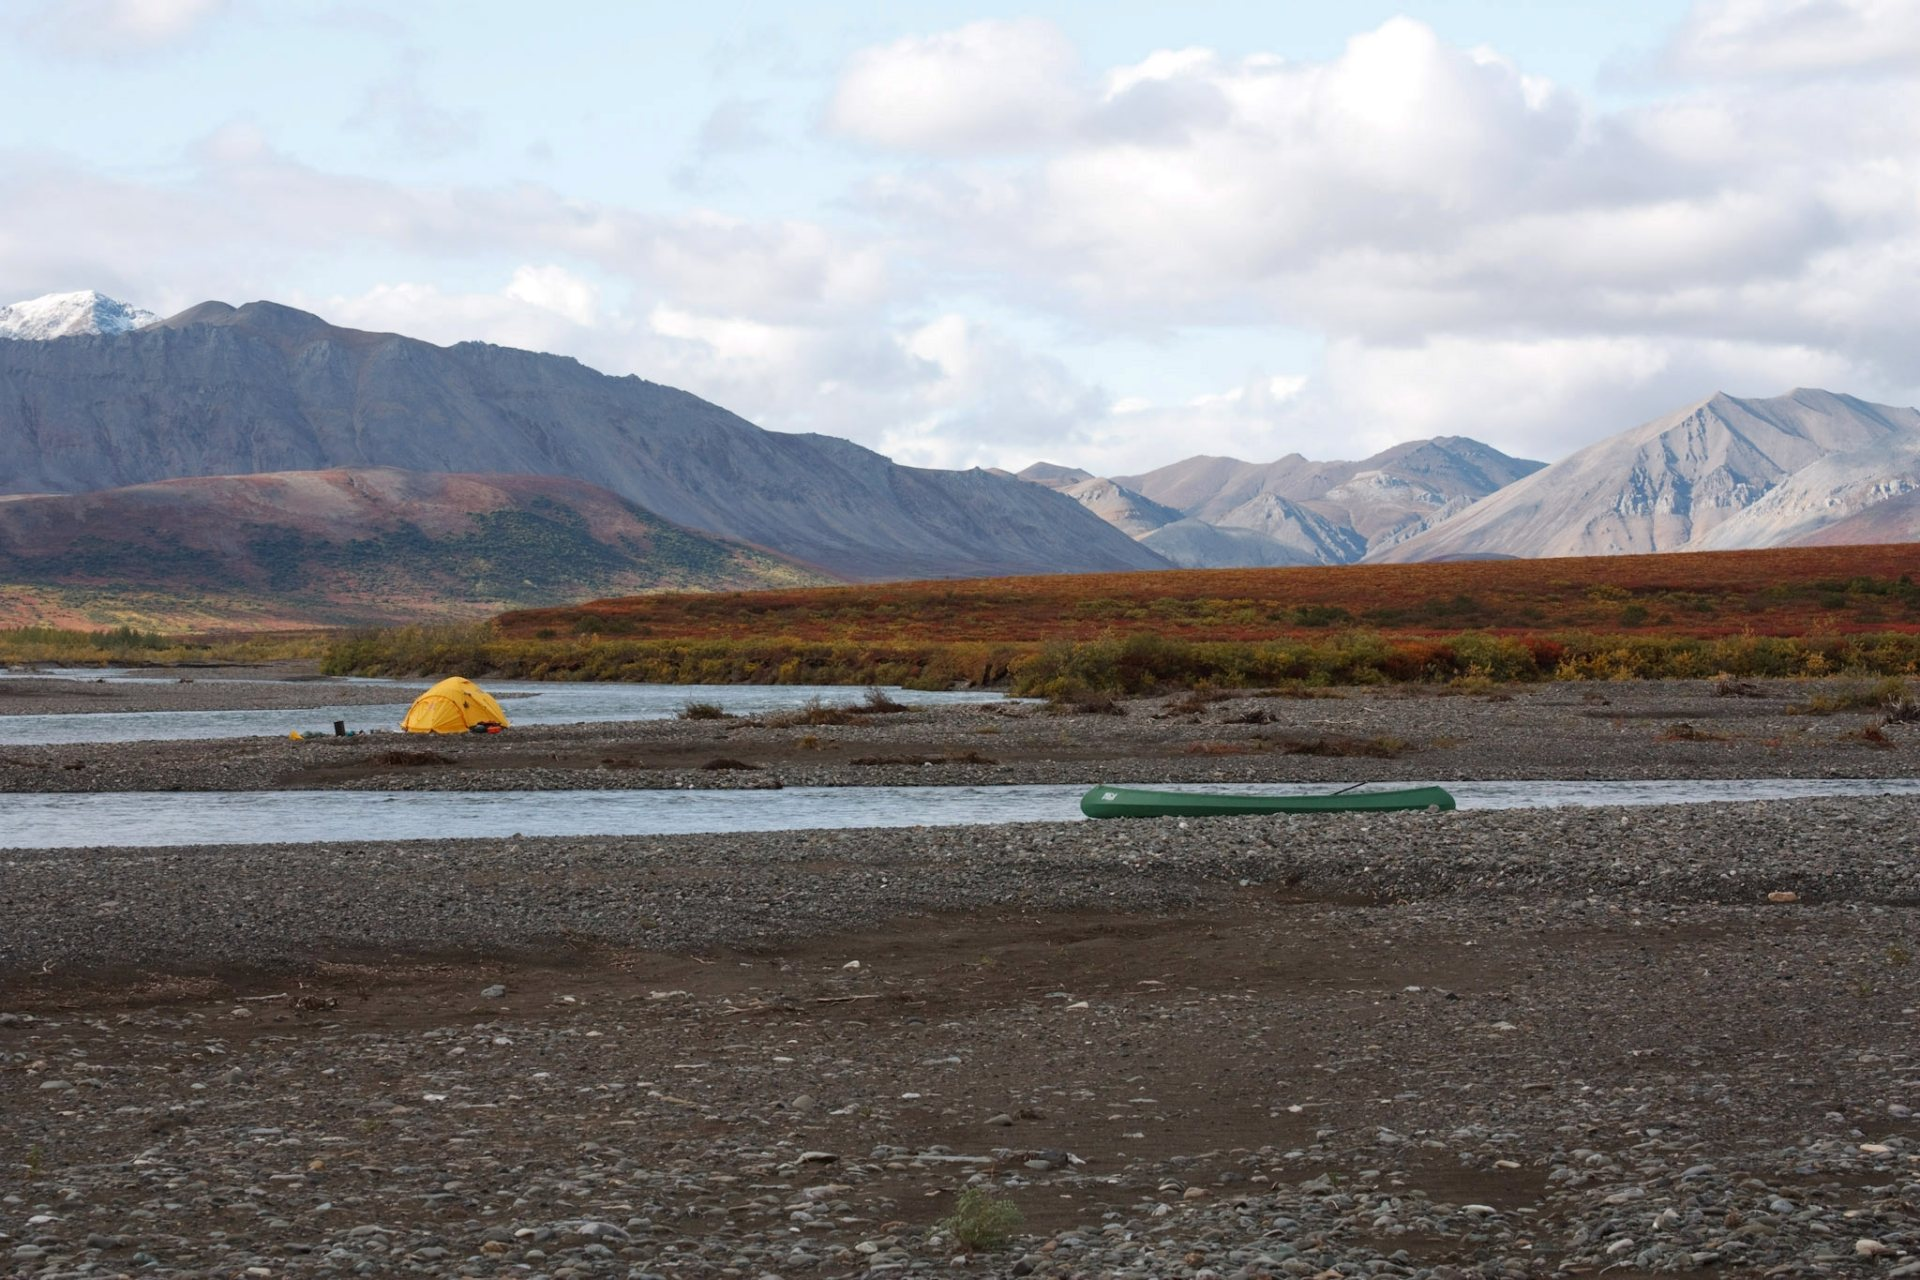 Free download high resolution image - free image free photo free stock image public domain picture -Camping on the Kugururok Alaska